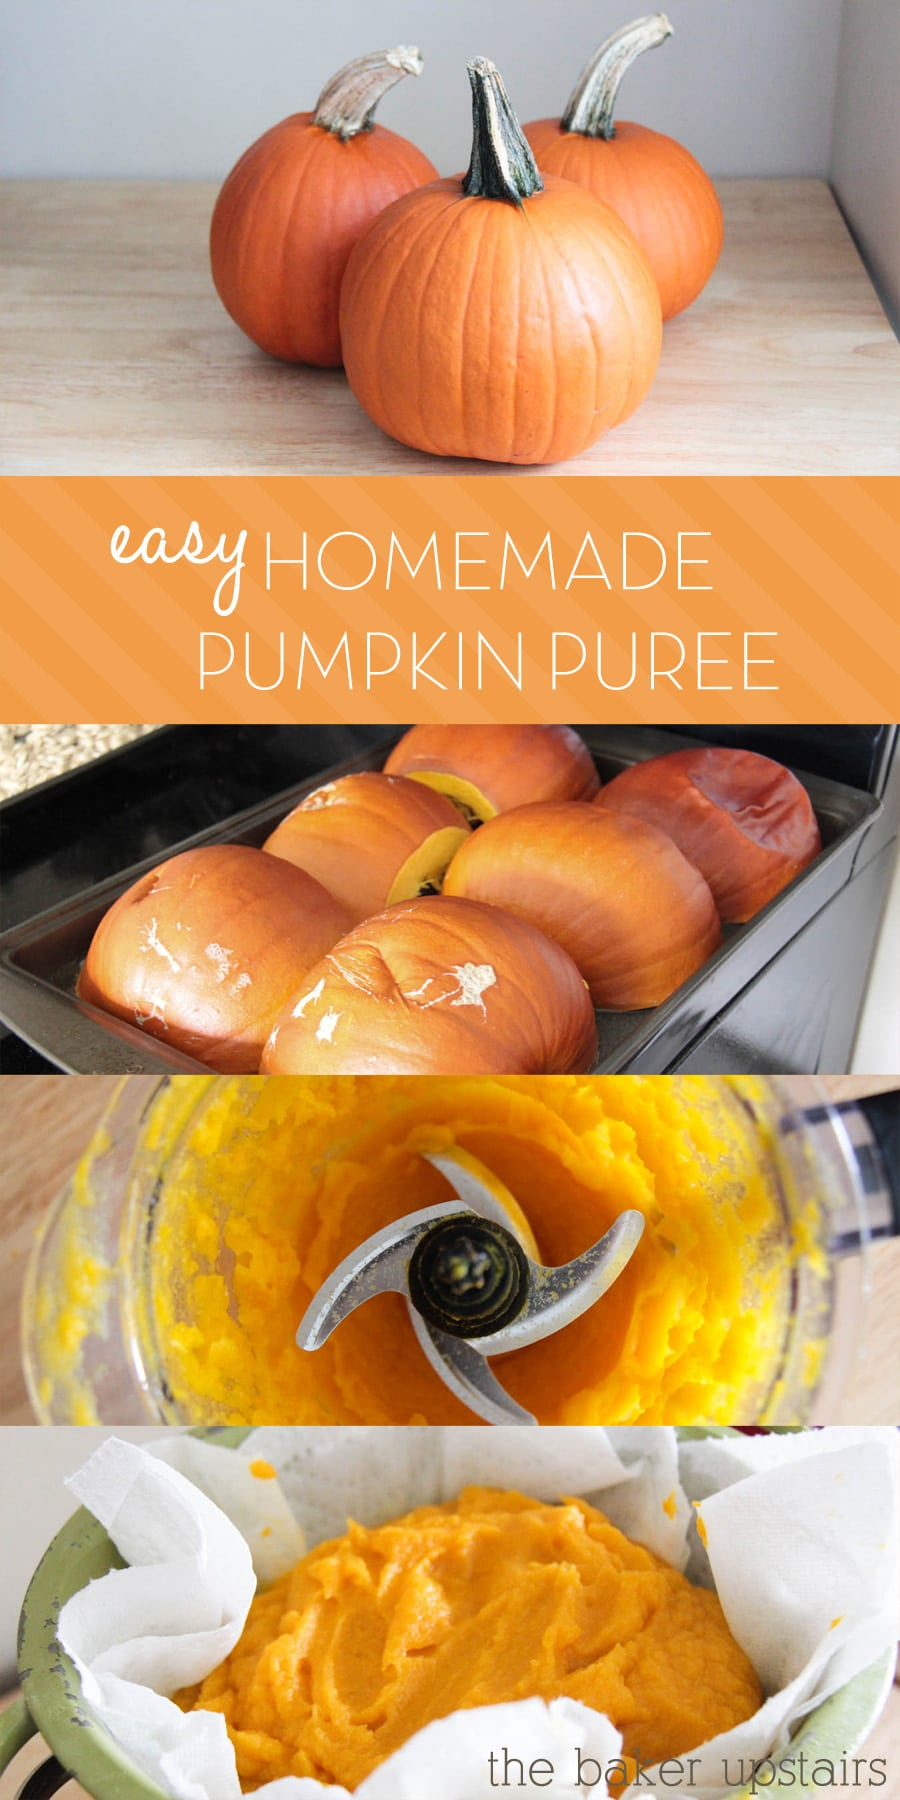 easy homemade pumpkin puree recipe